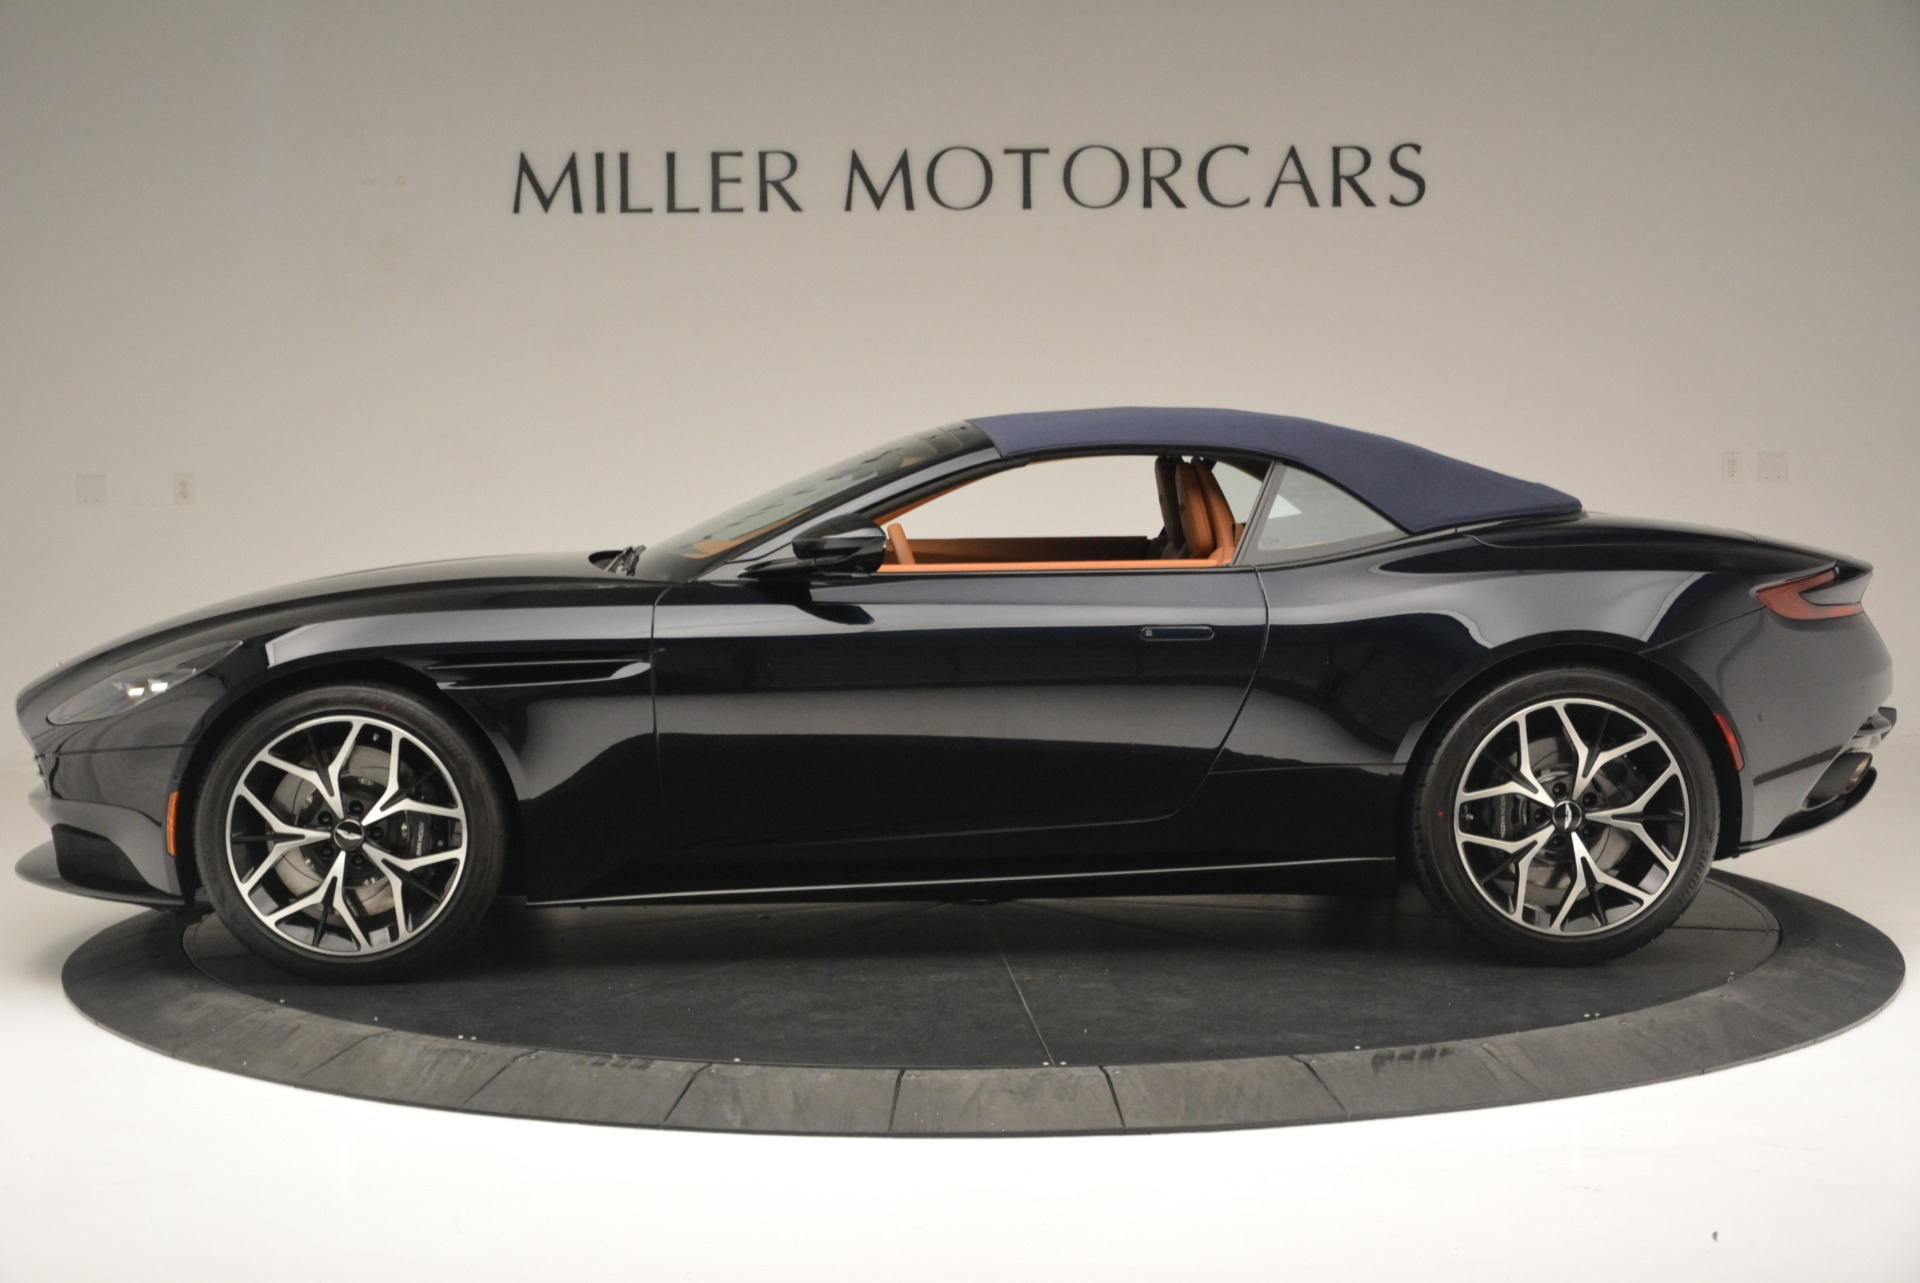 New 2019 Aston Martin DB11 Volante Volante For Sale In Westport, CT 2450_p15